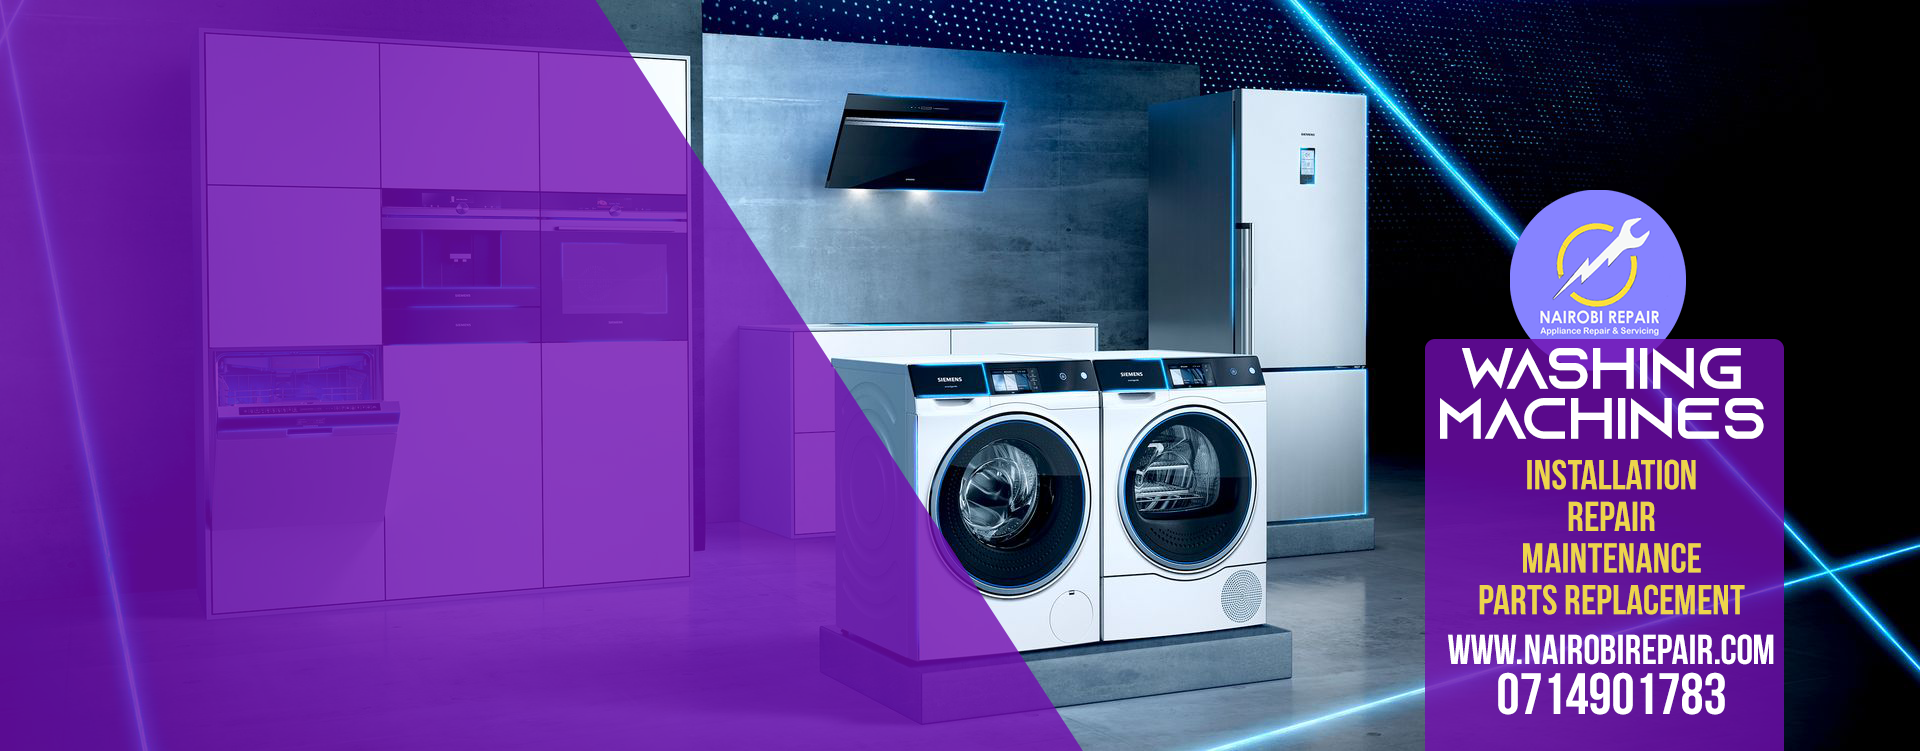 WASHING MACHINE REPAIR IN NAIROBI 0714901783 - Nairobi, Kenya